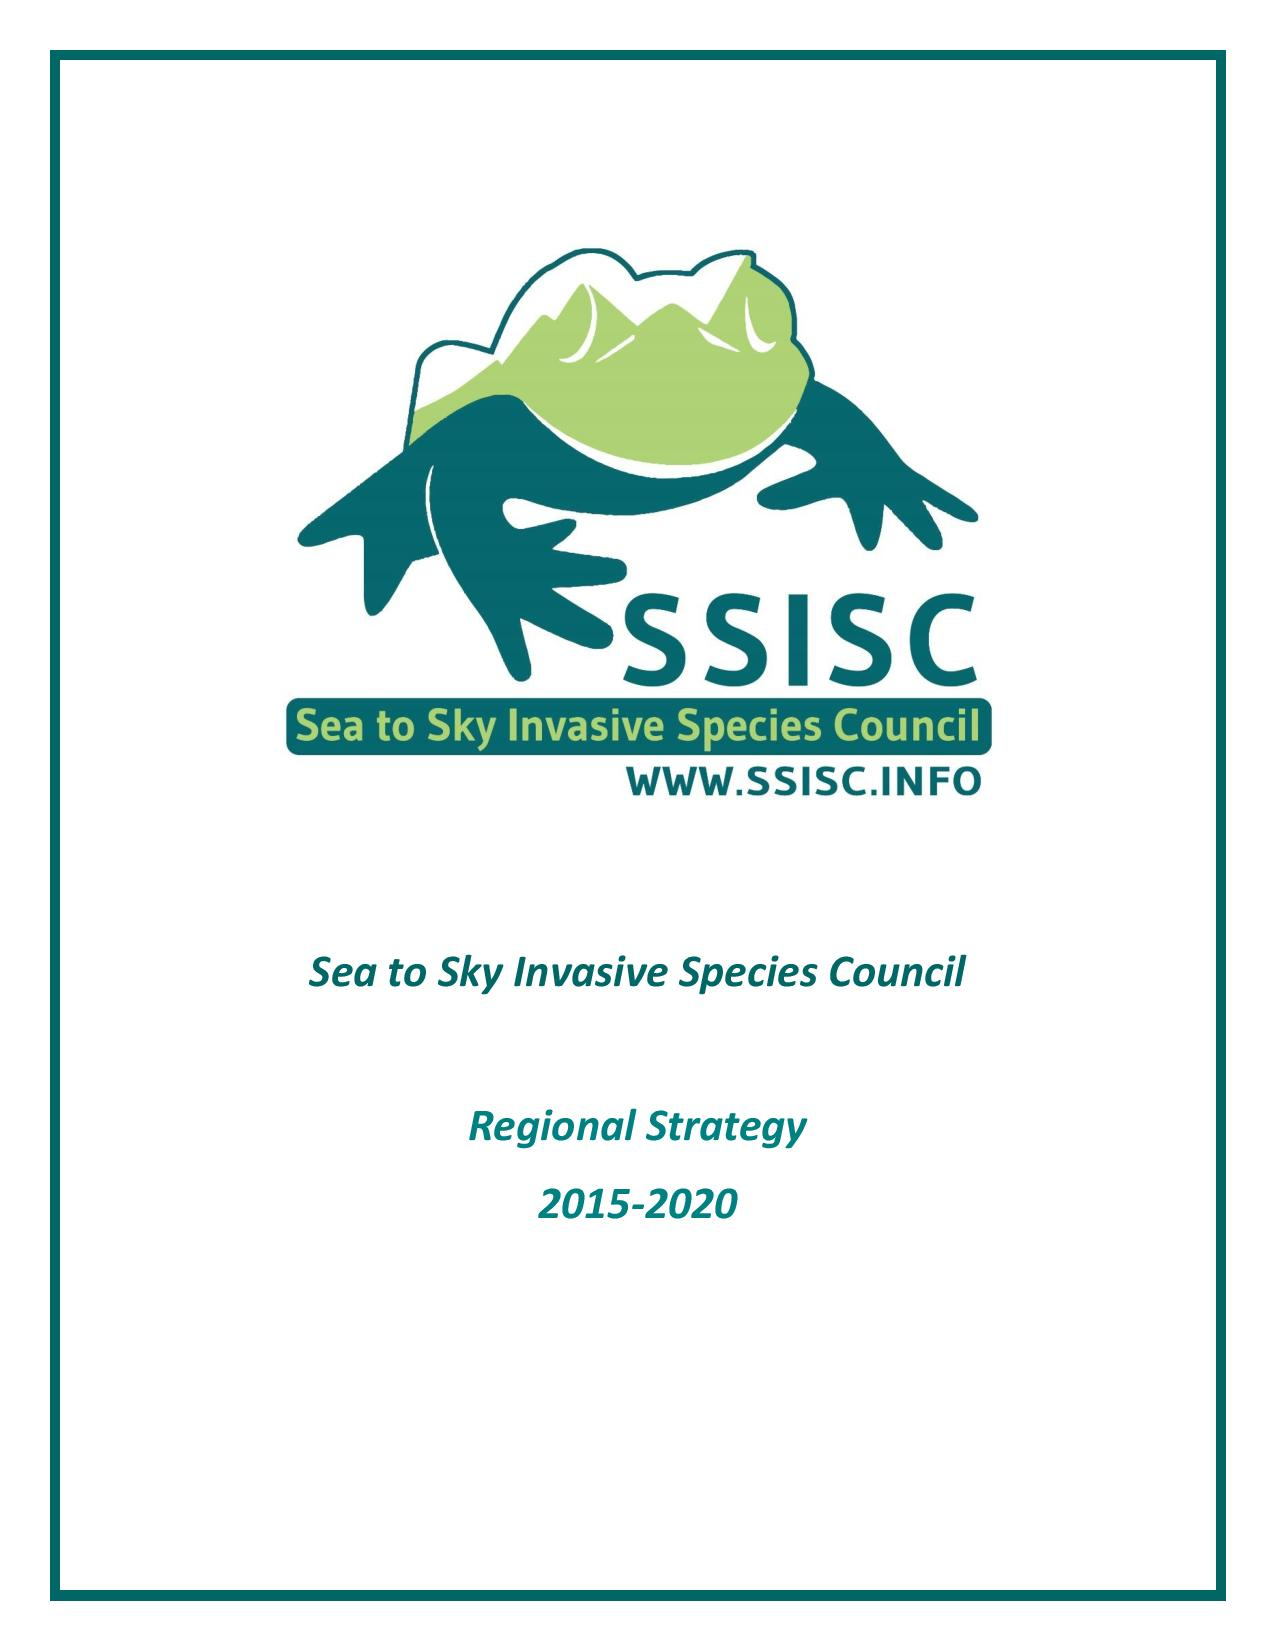 SSISC-Regional-Strategy-2015-2020-FINAL-front-page-page-001